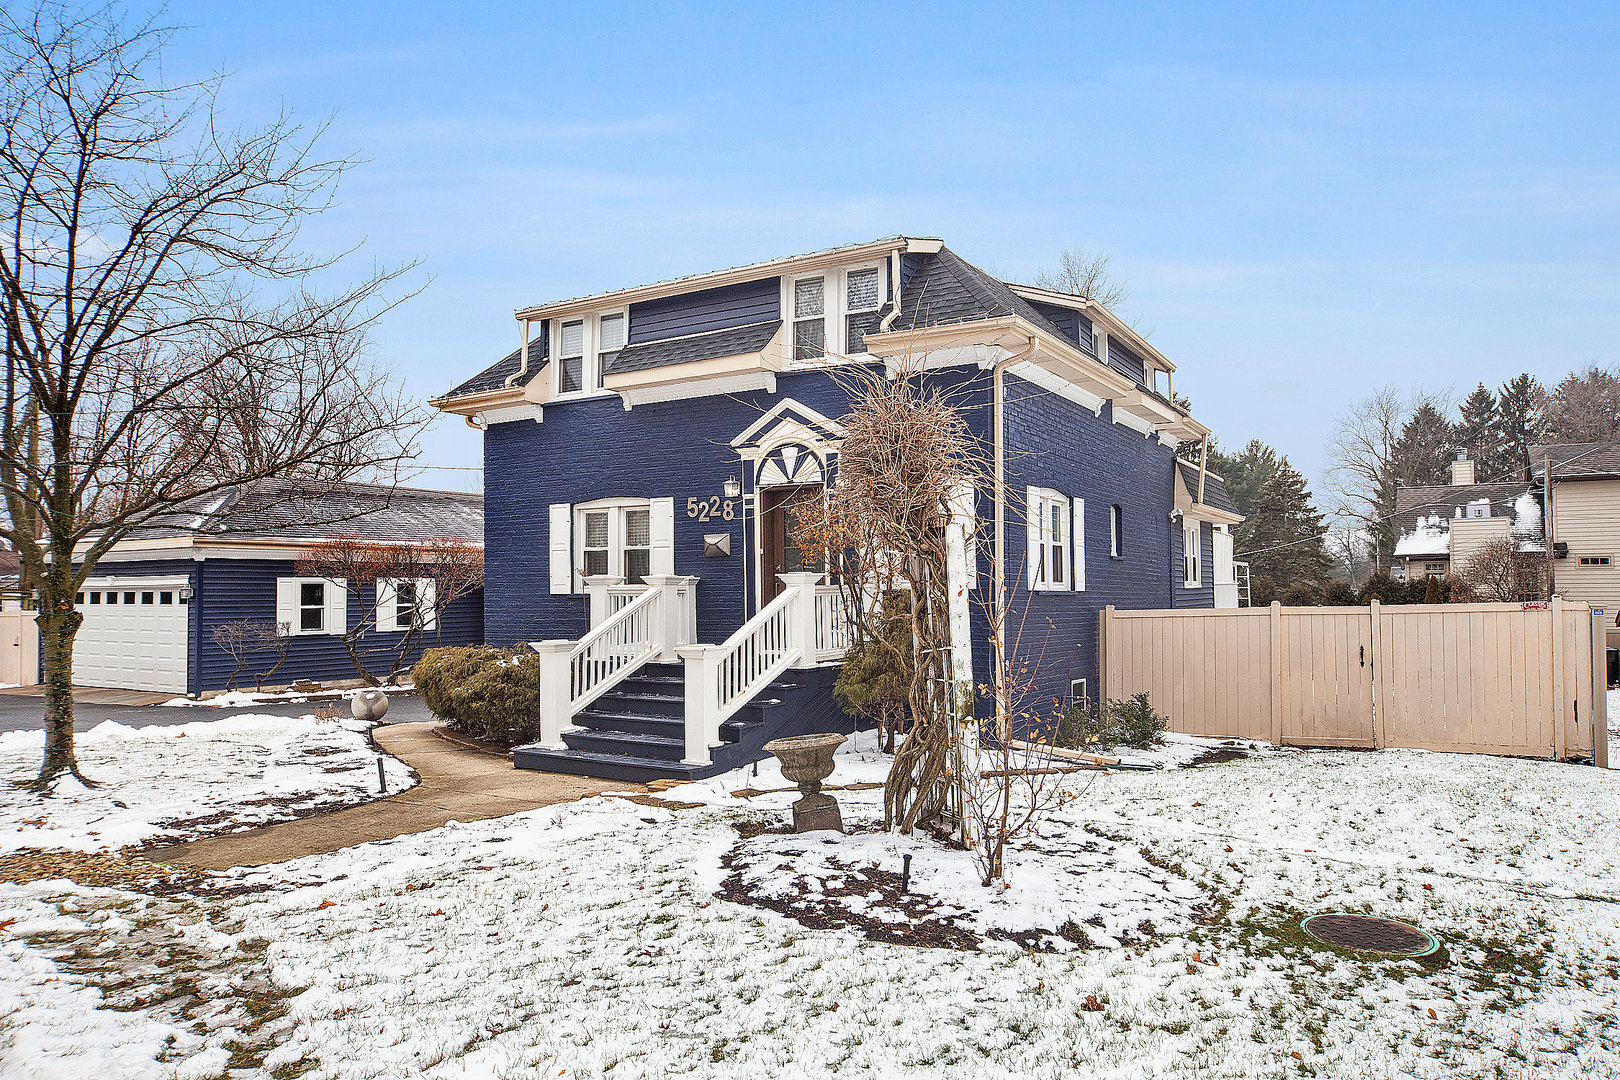 5228 Williams Street, Downers Grove, Illinois